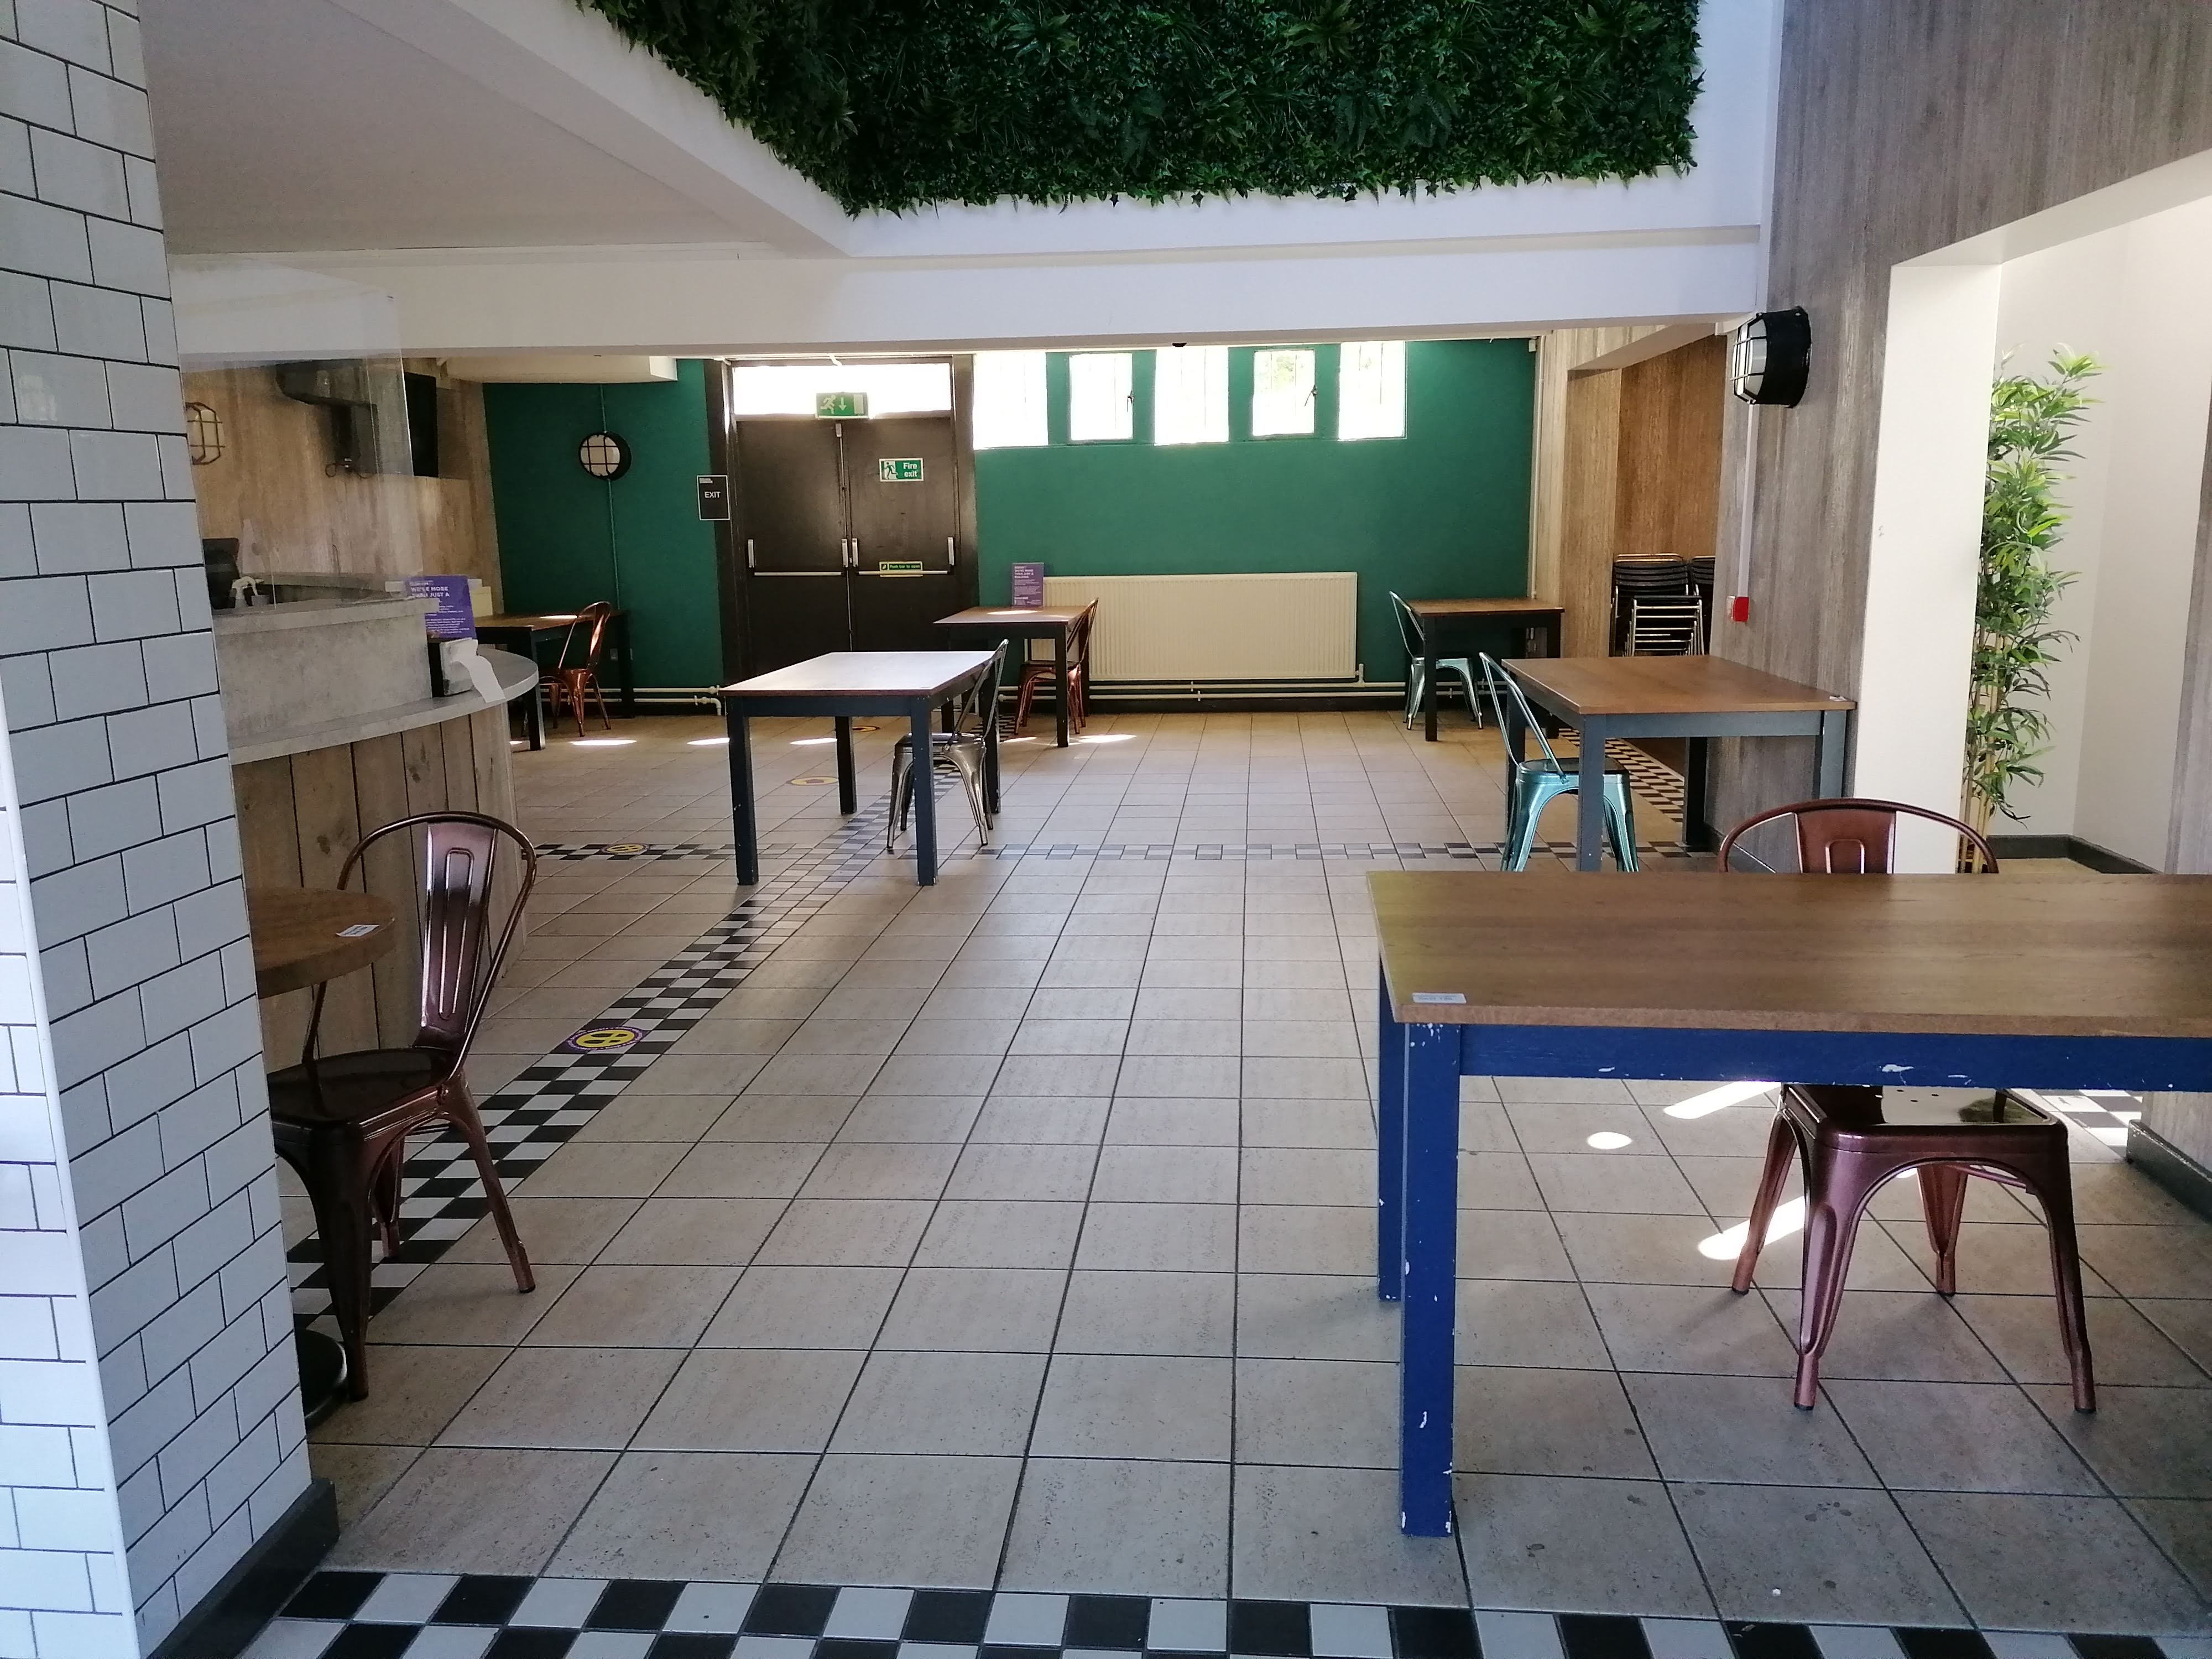 Study spaces in the Kingsgate area in DSU